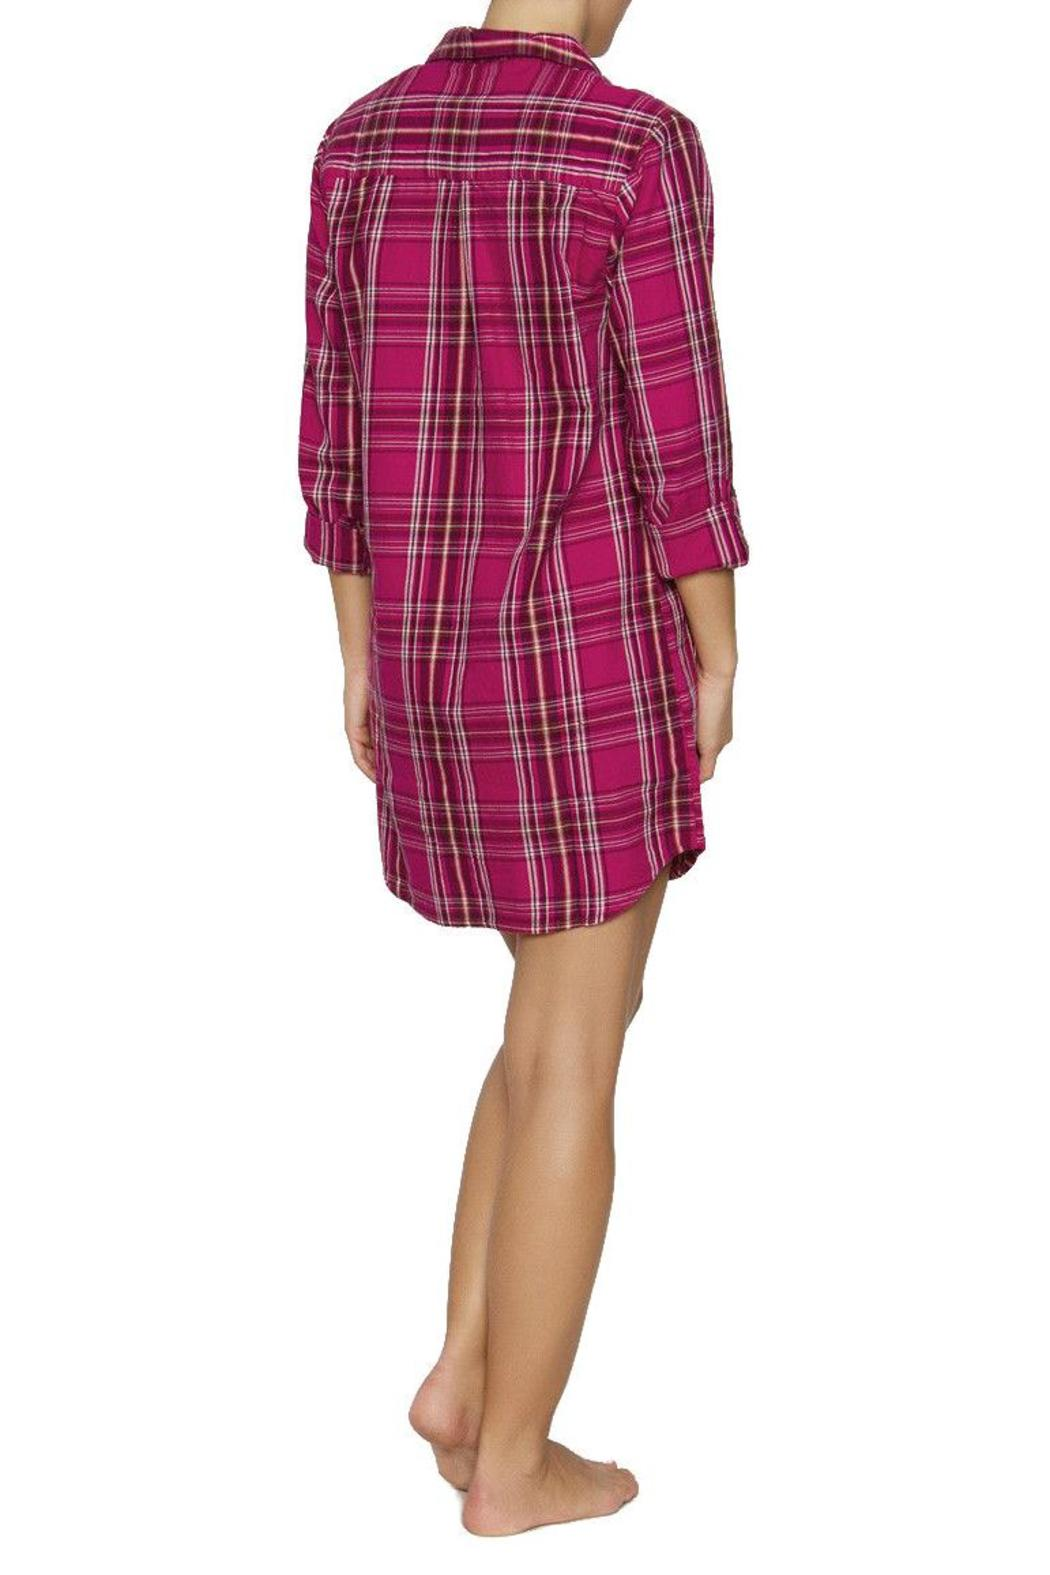 The Dressing Room Fuchsia Plaid Nightshirt - Front Full Image